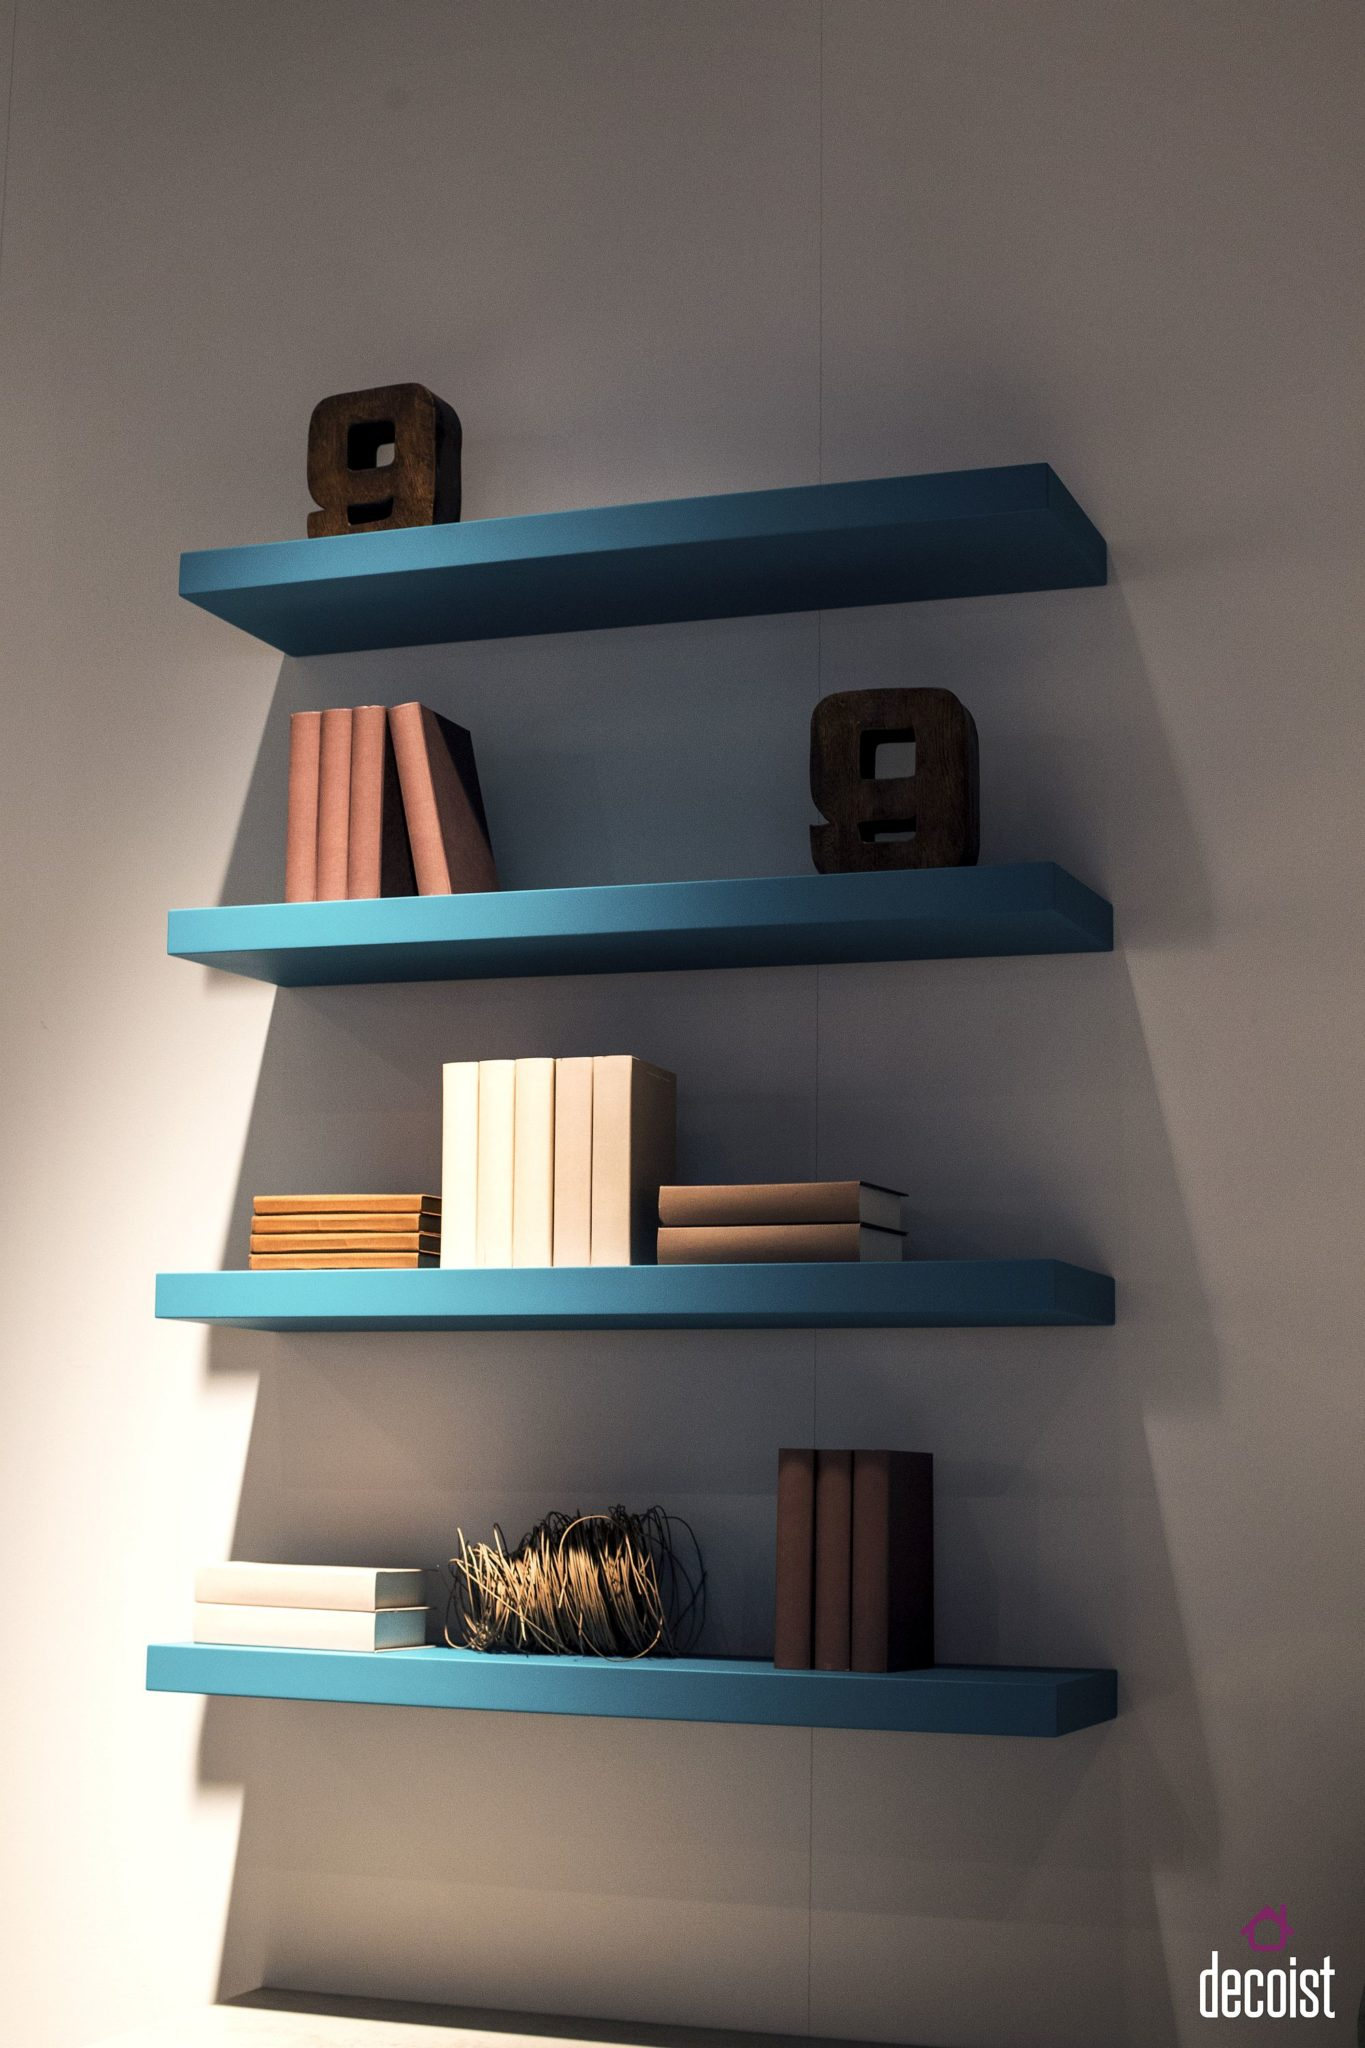 Floating shelves add a touch of turquoise to the interior